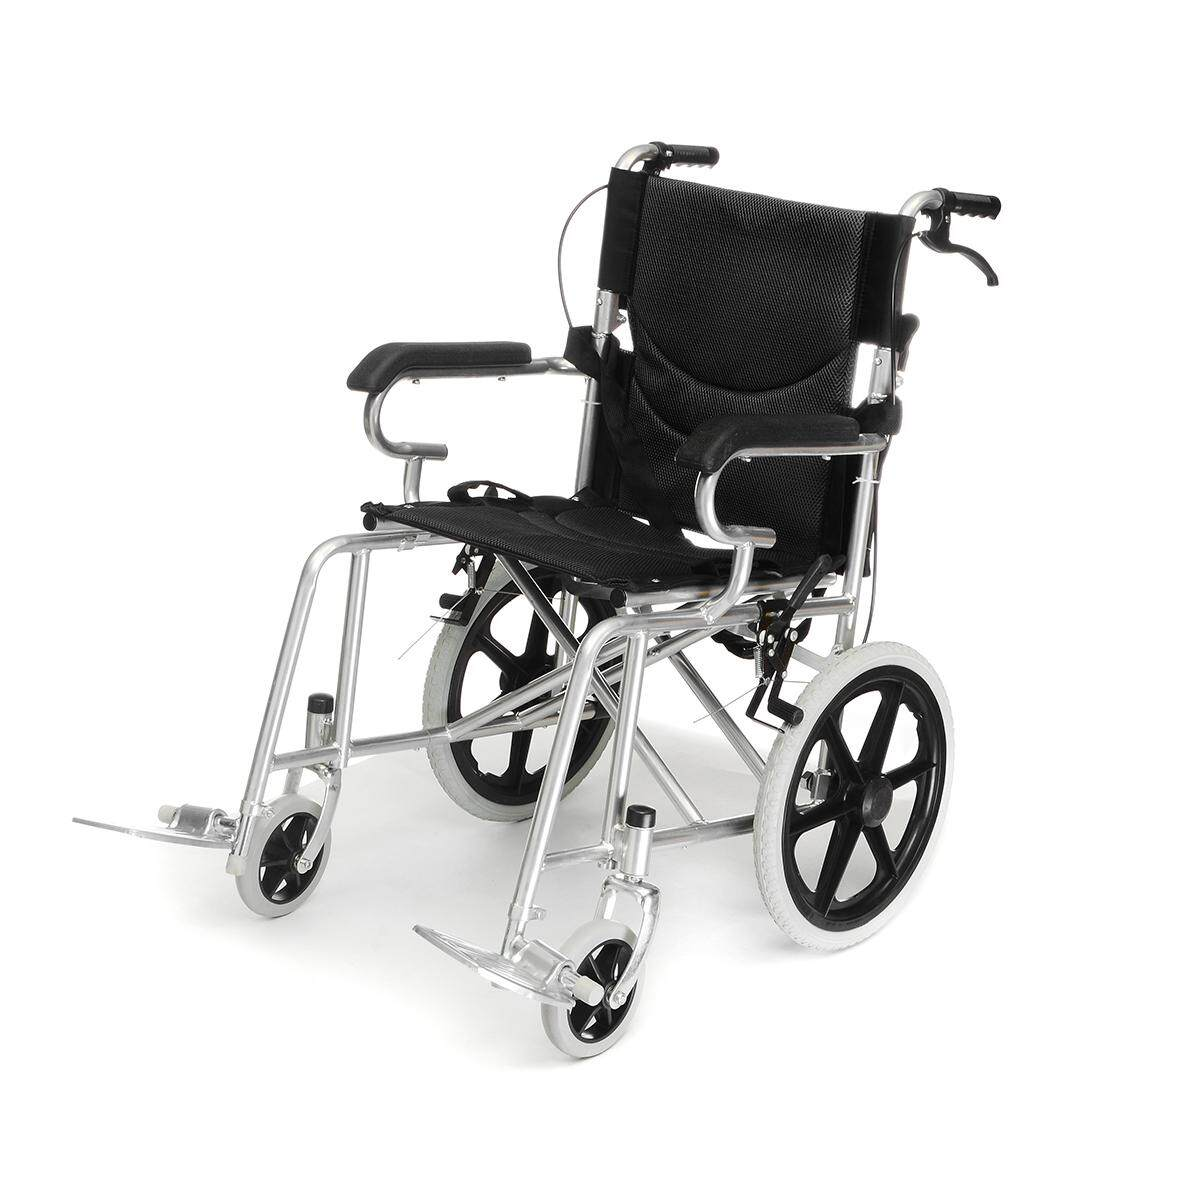 Folding Portable Wheelchair Walking Aid wheel chair Material: thicker steel tube Packing size: 93*95*27cm - intl